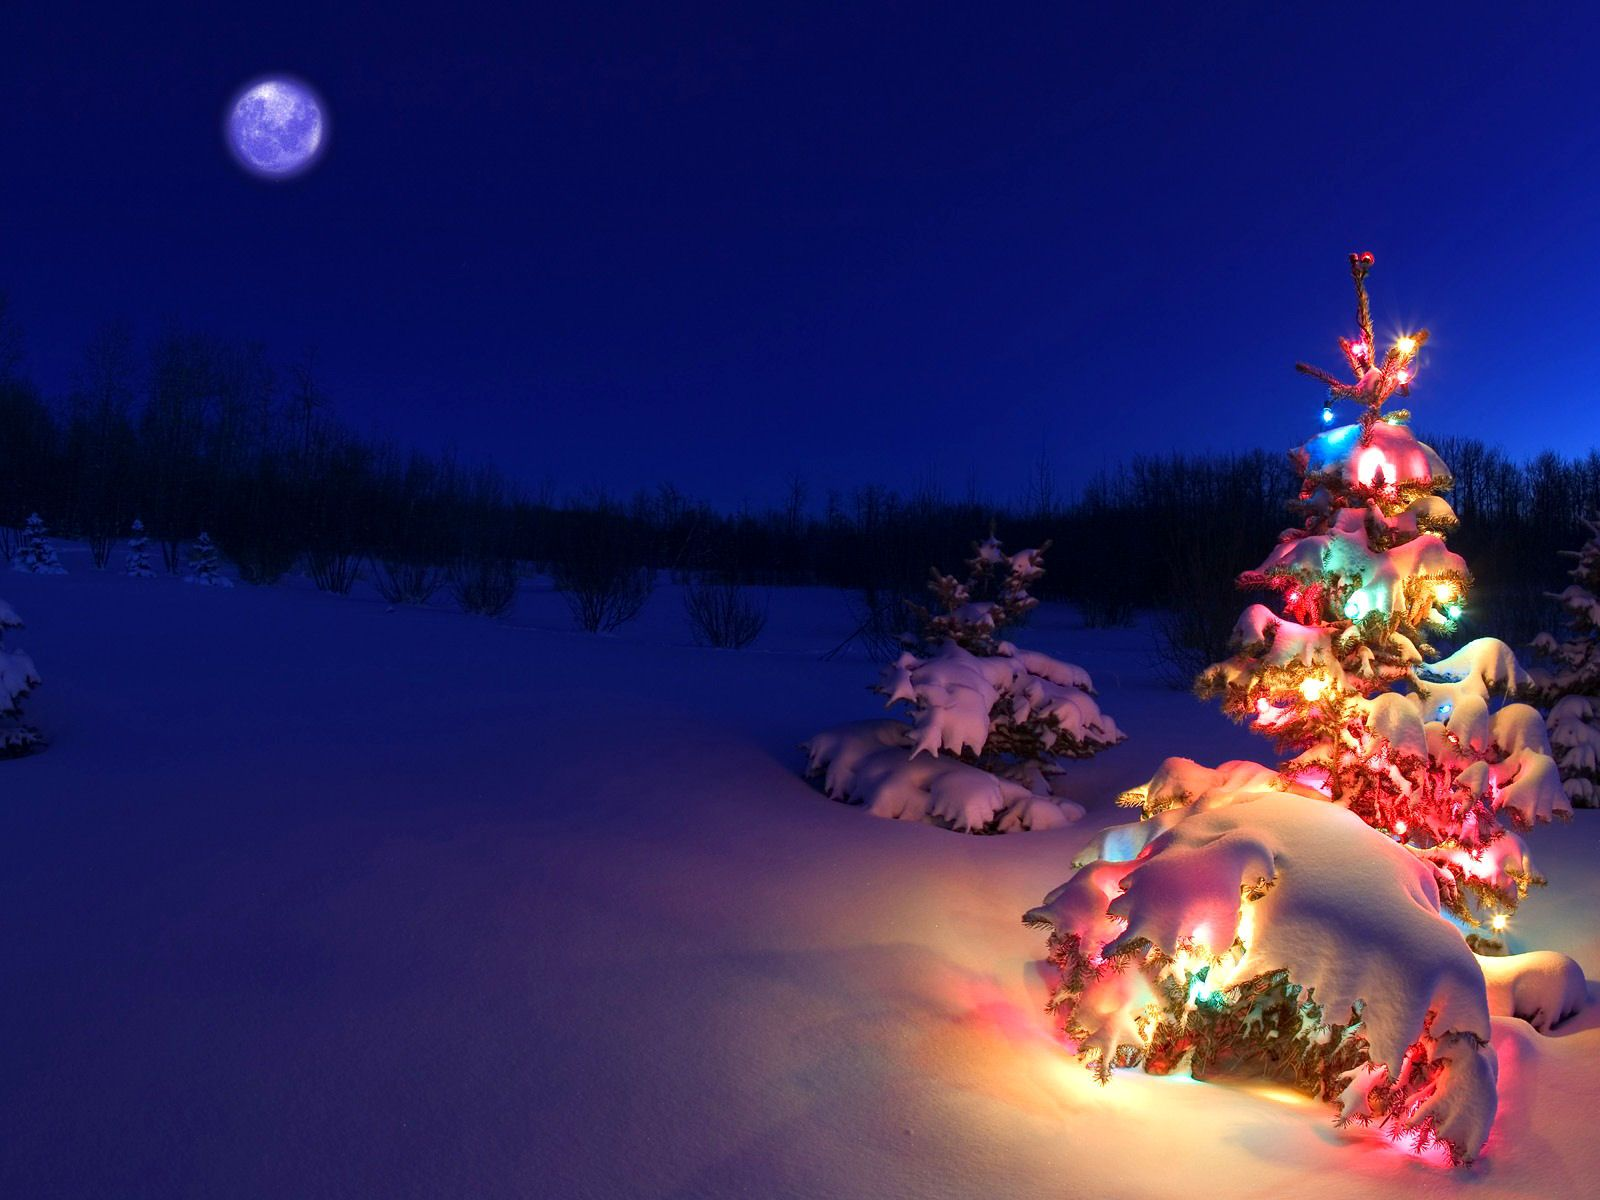 result for christmas tree natural lights snow hd wallpapers backgorund at daily screens on page 0 - Snow Christmas Tree